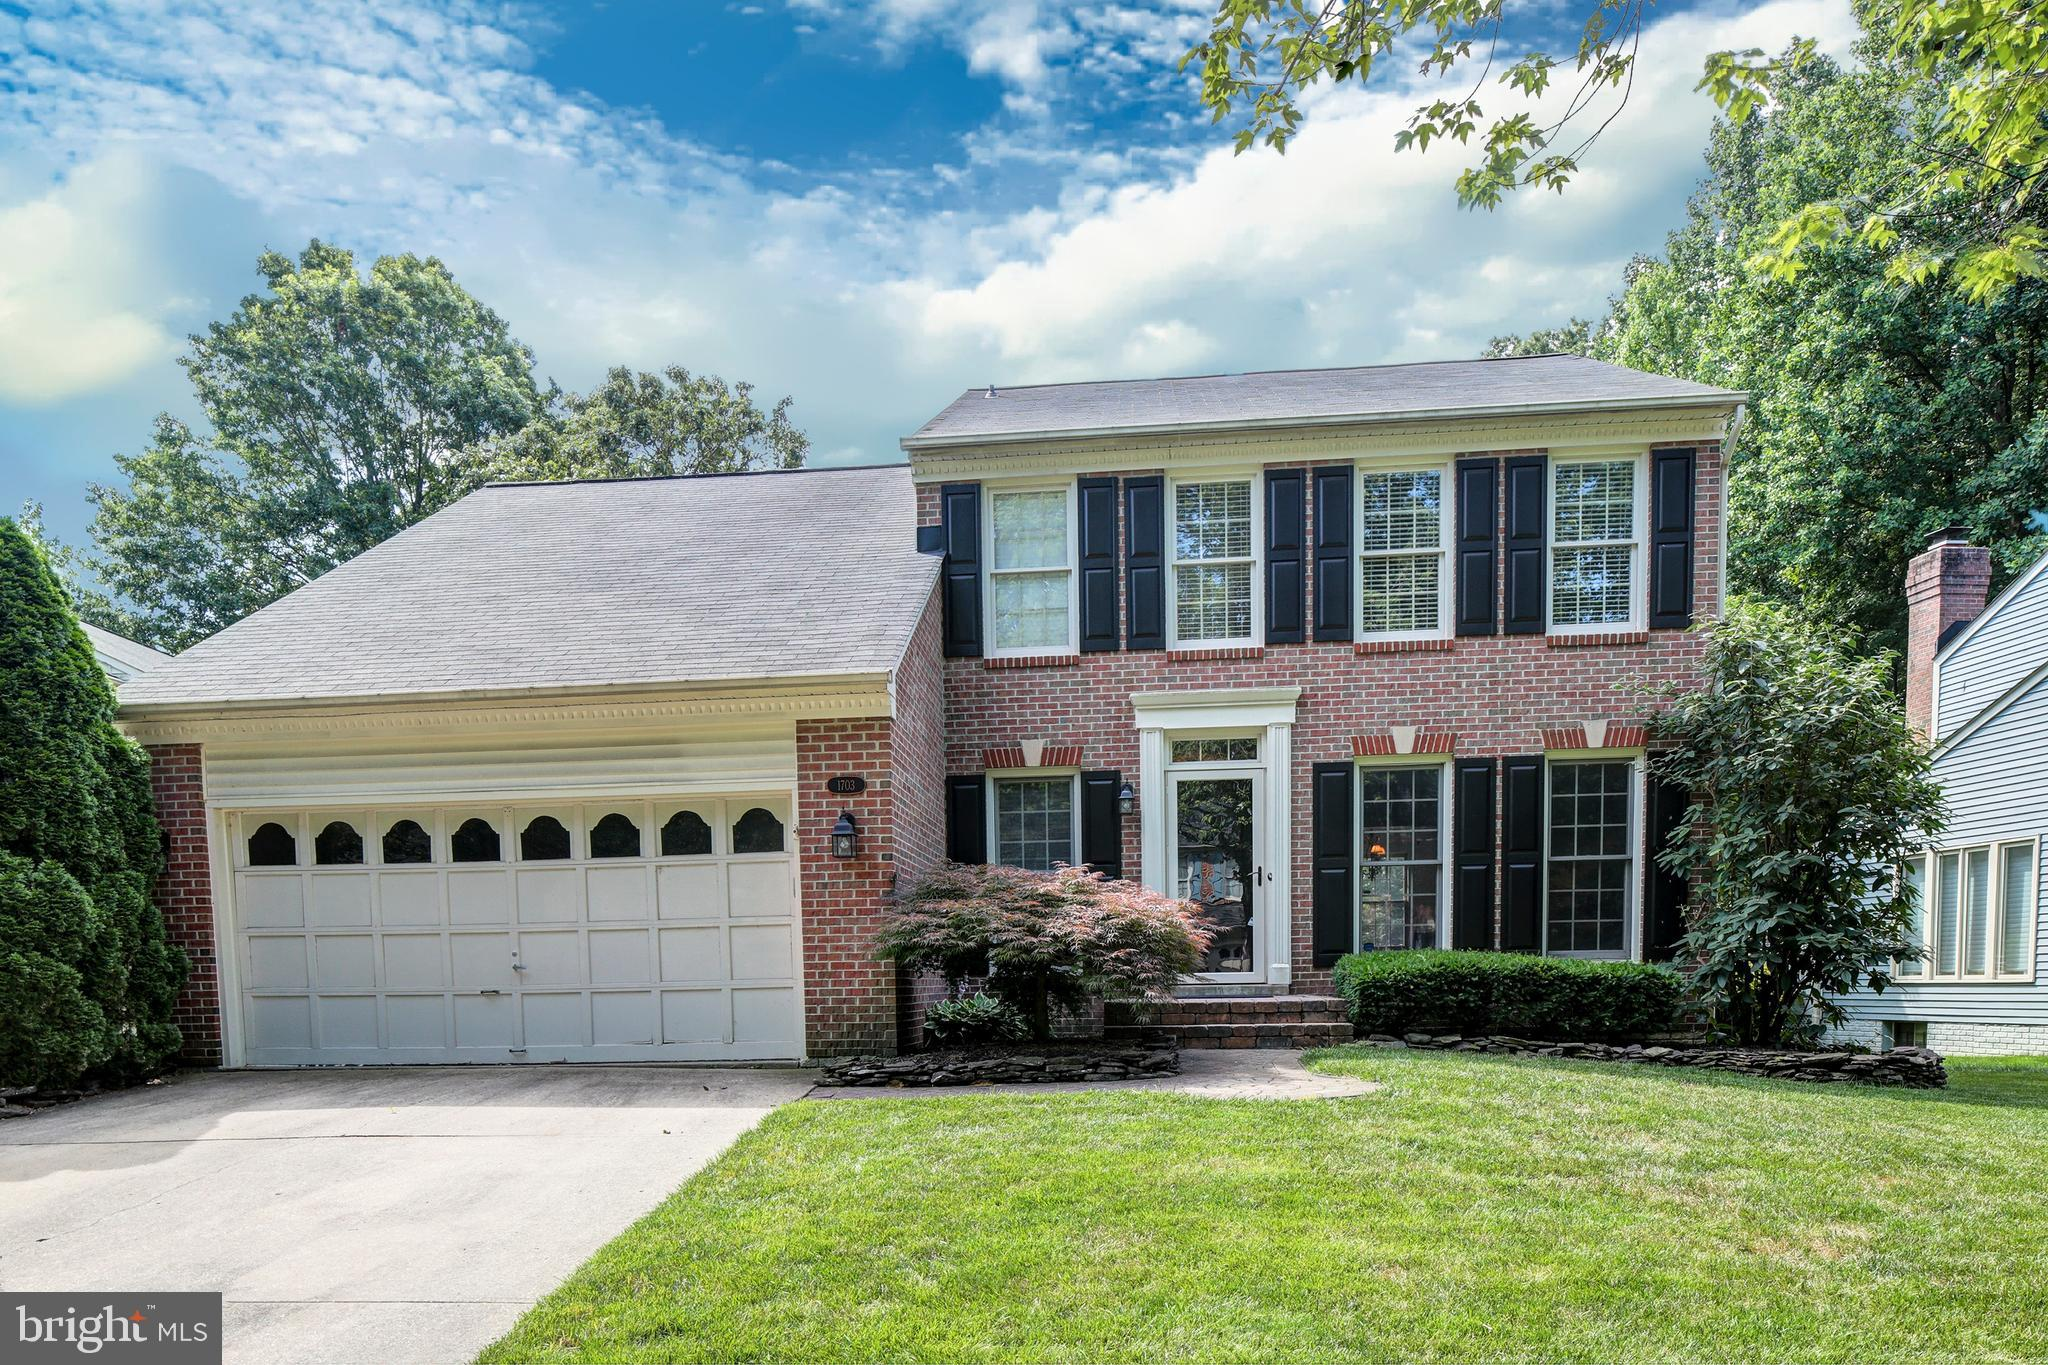 1703 PICADILLY ROAD, CROFTON, MD 21114